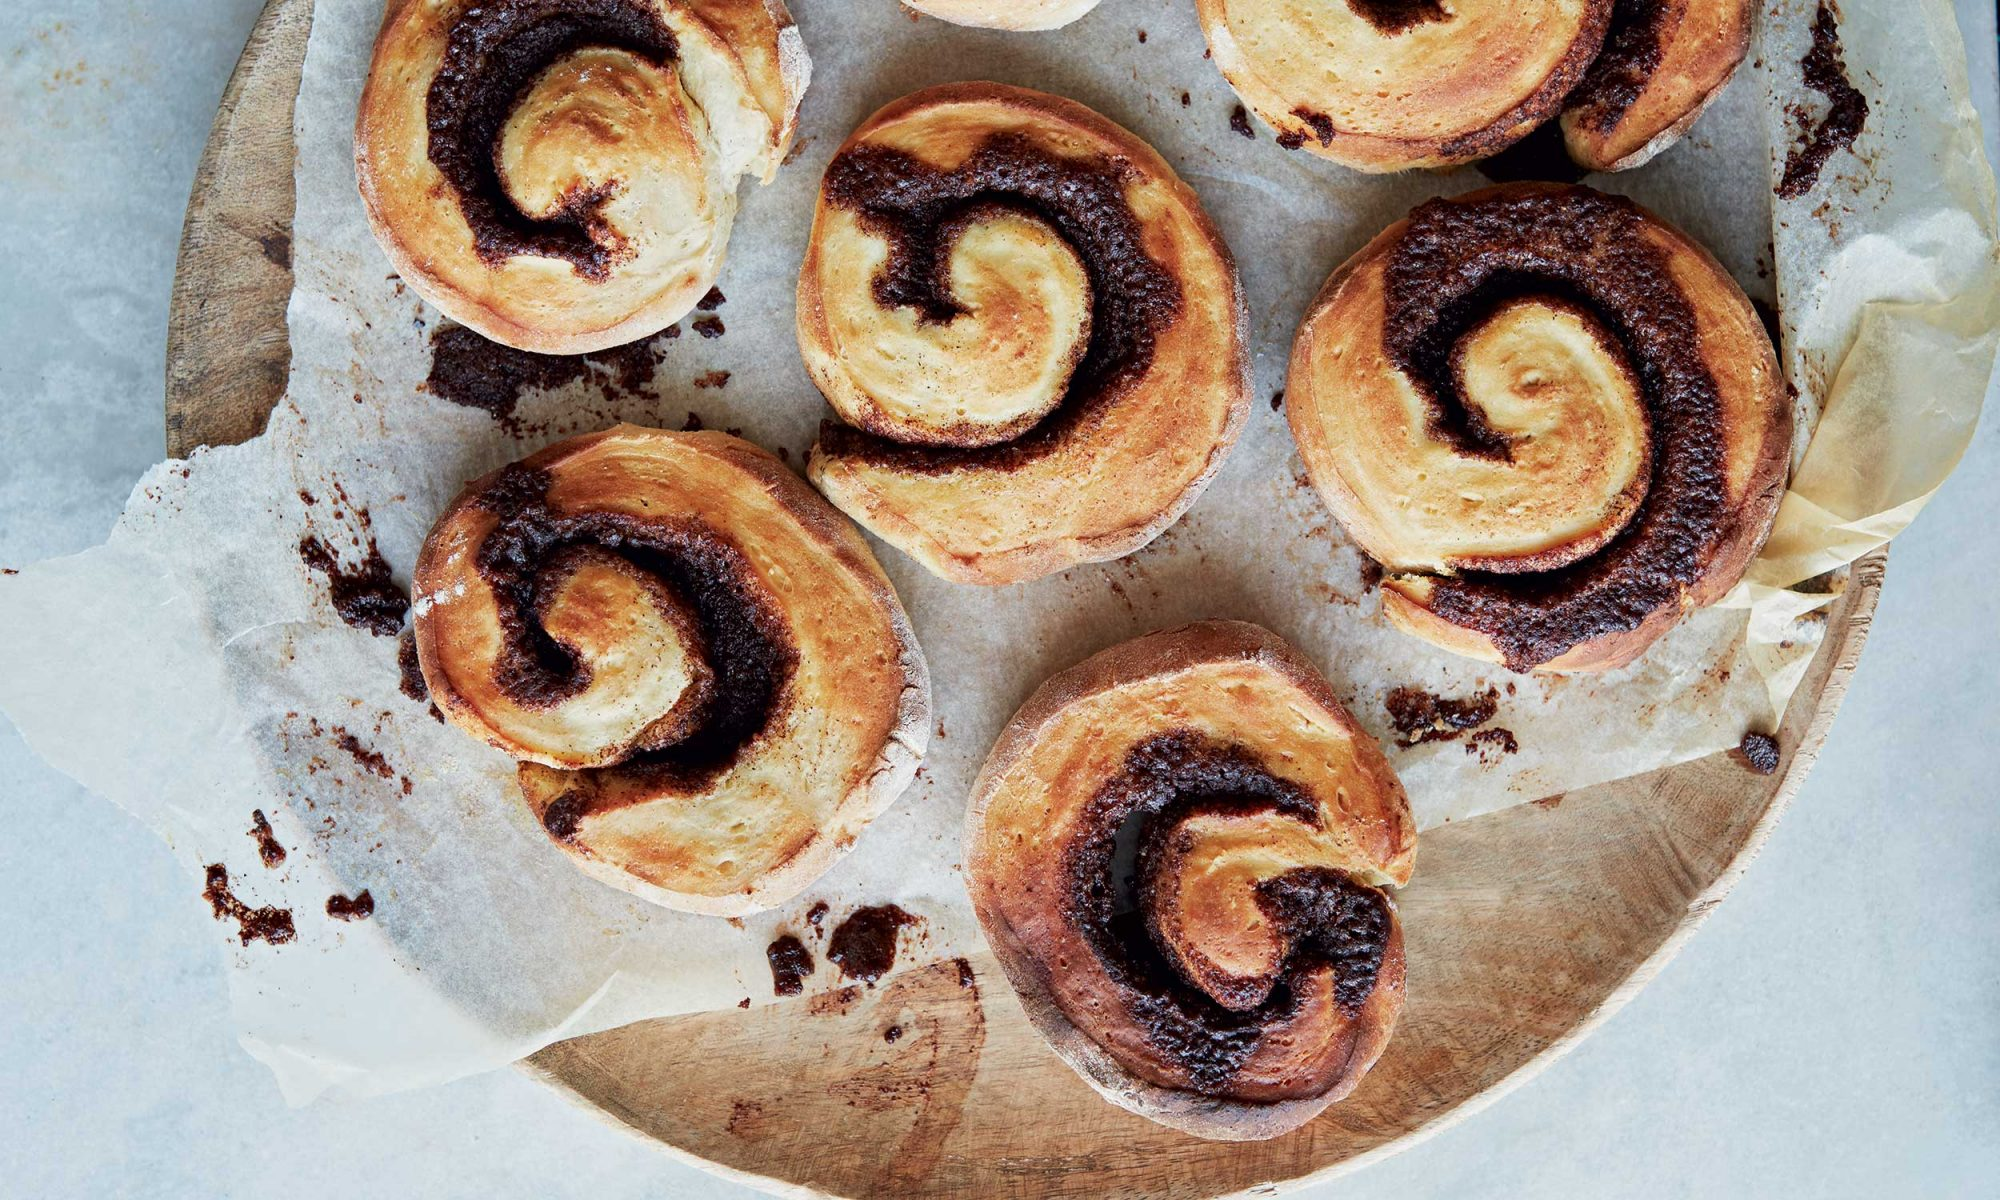 EC: These Danish Cinnamon Buns Will Make You Understand Hygge